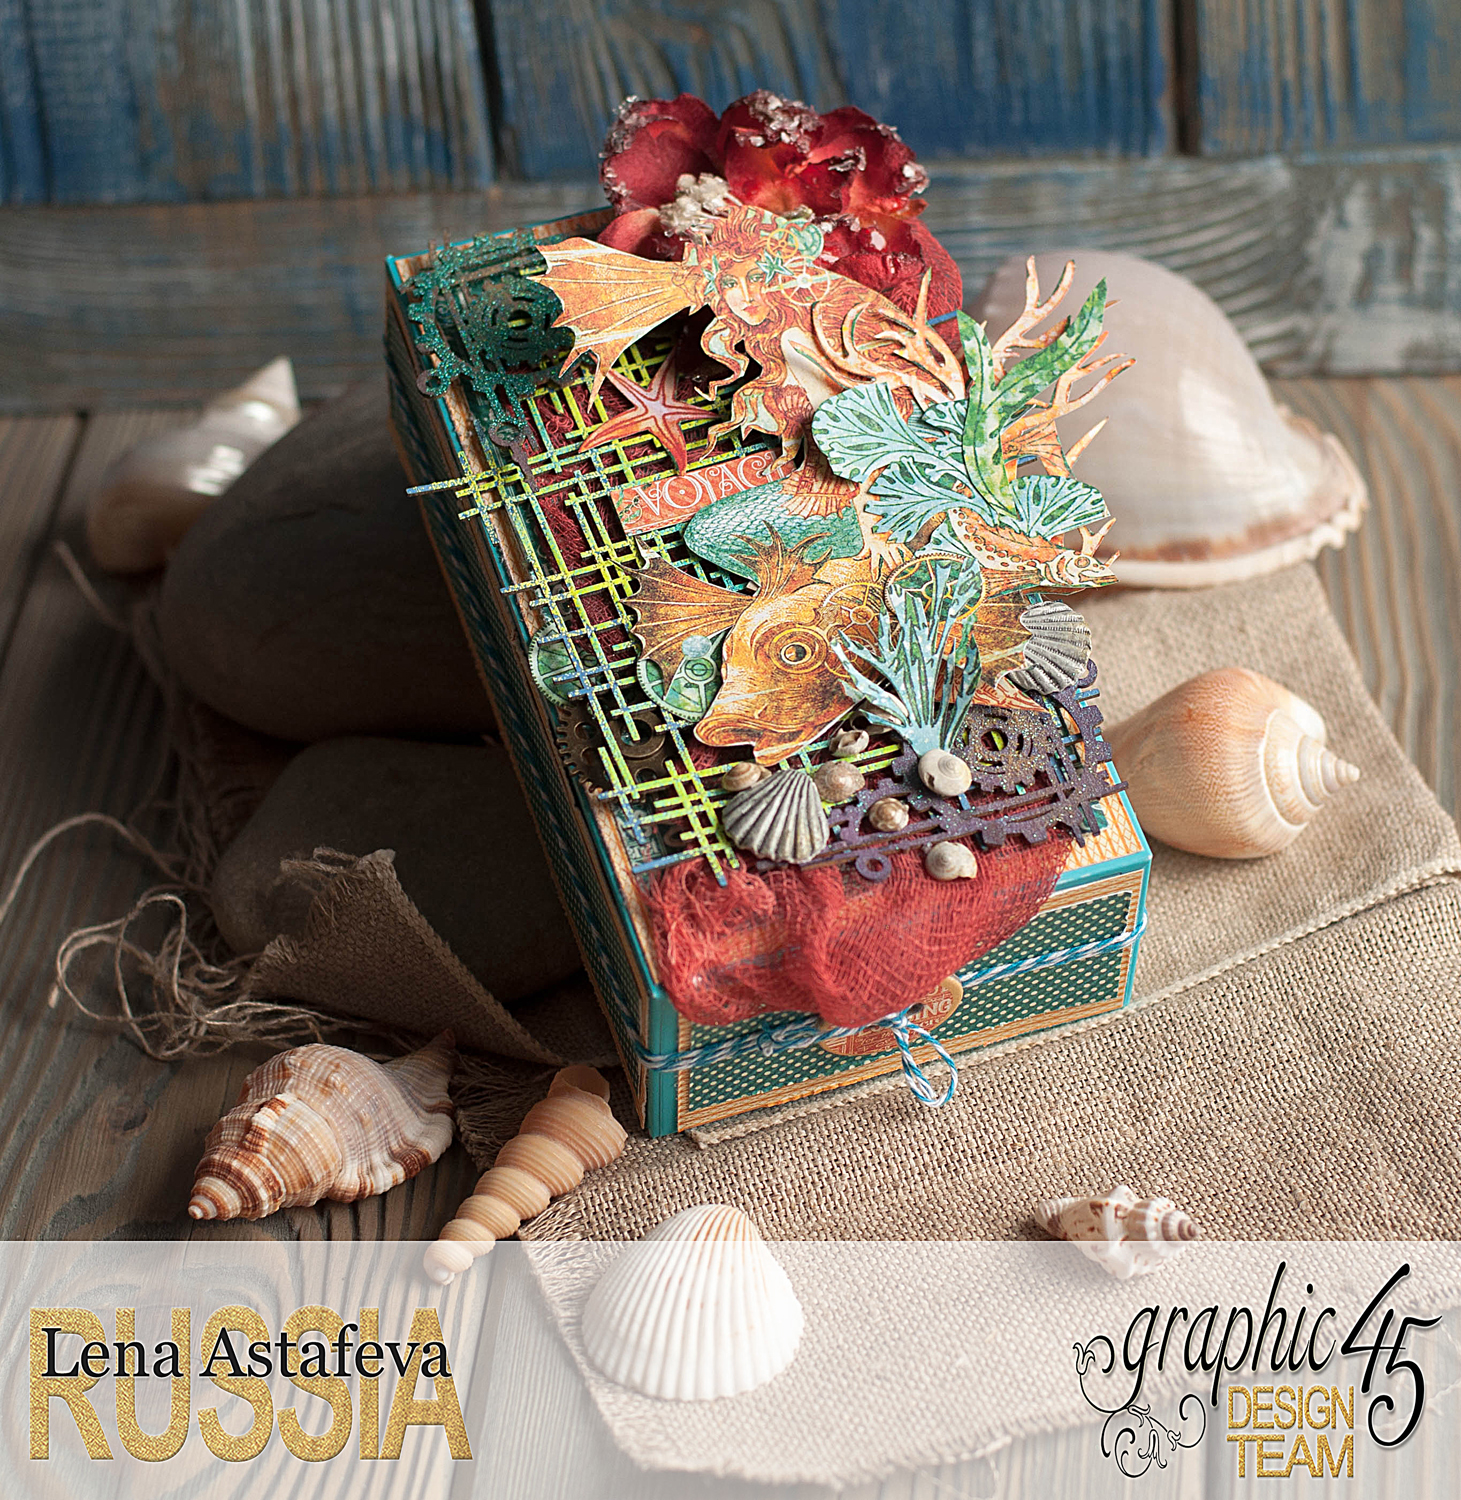 Box-Voyage Beneath the Sea-Graphic 45- by Lena Astafeva-6.jpg